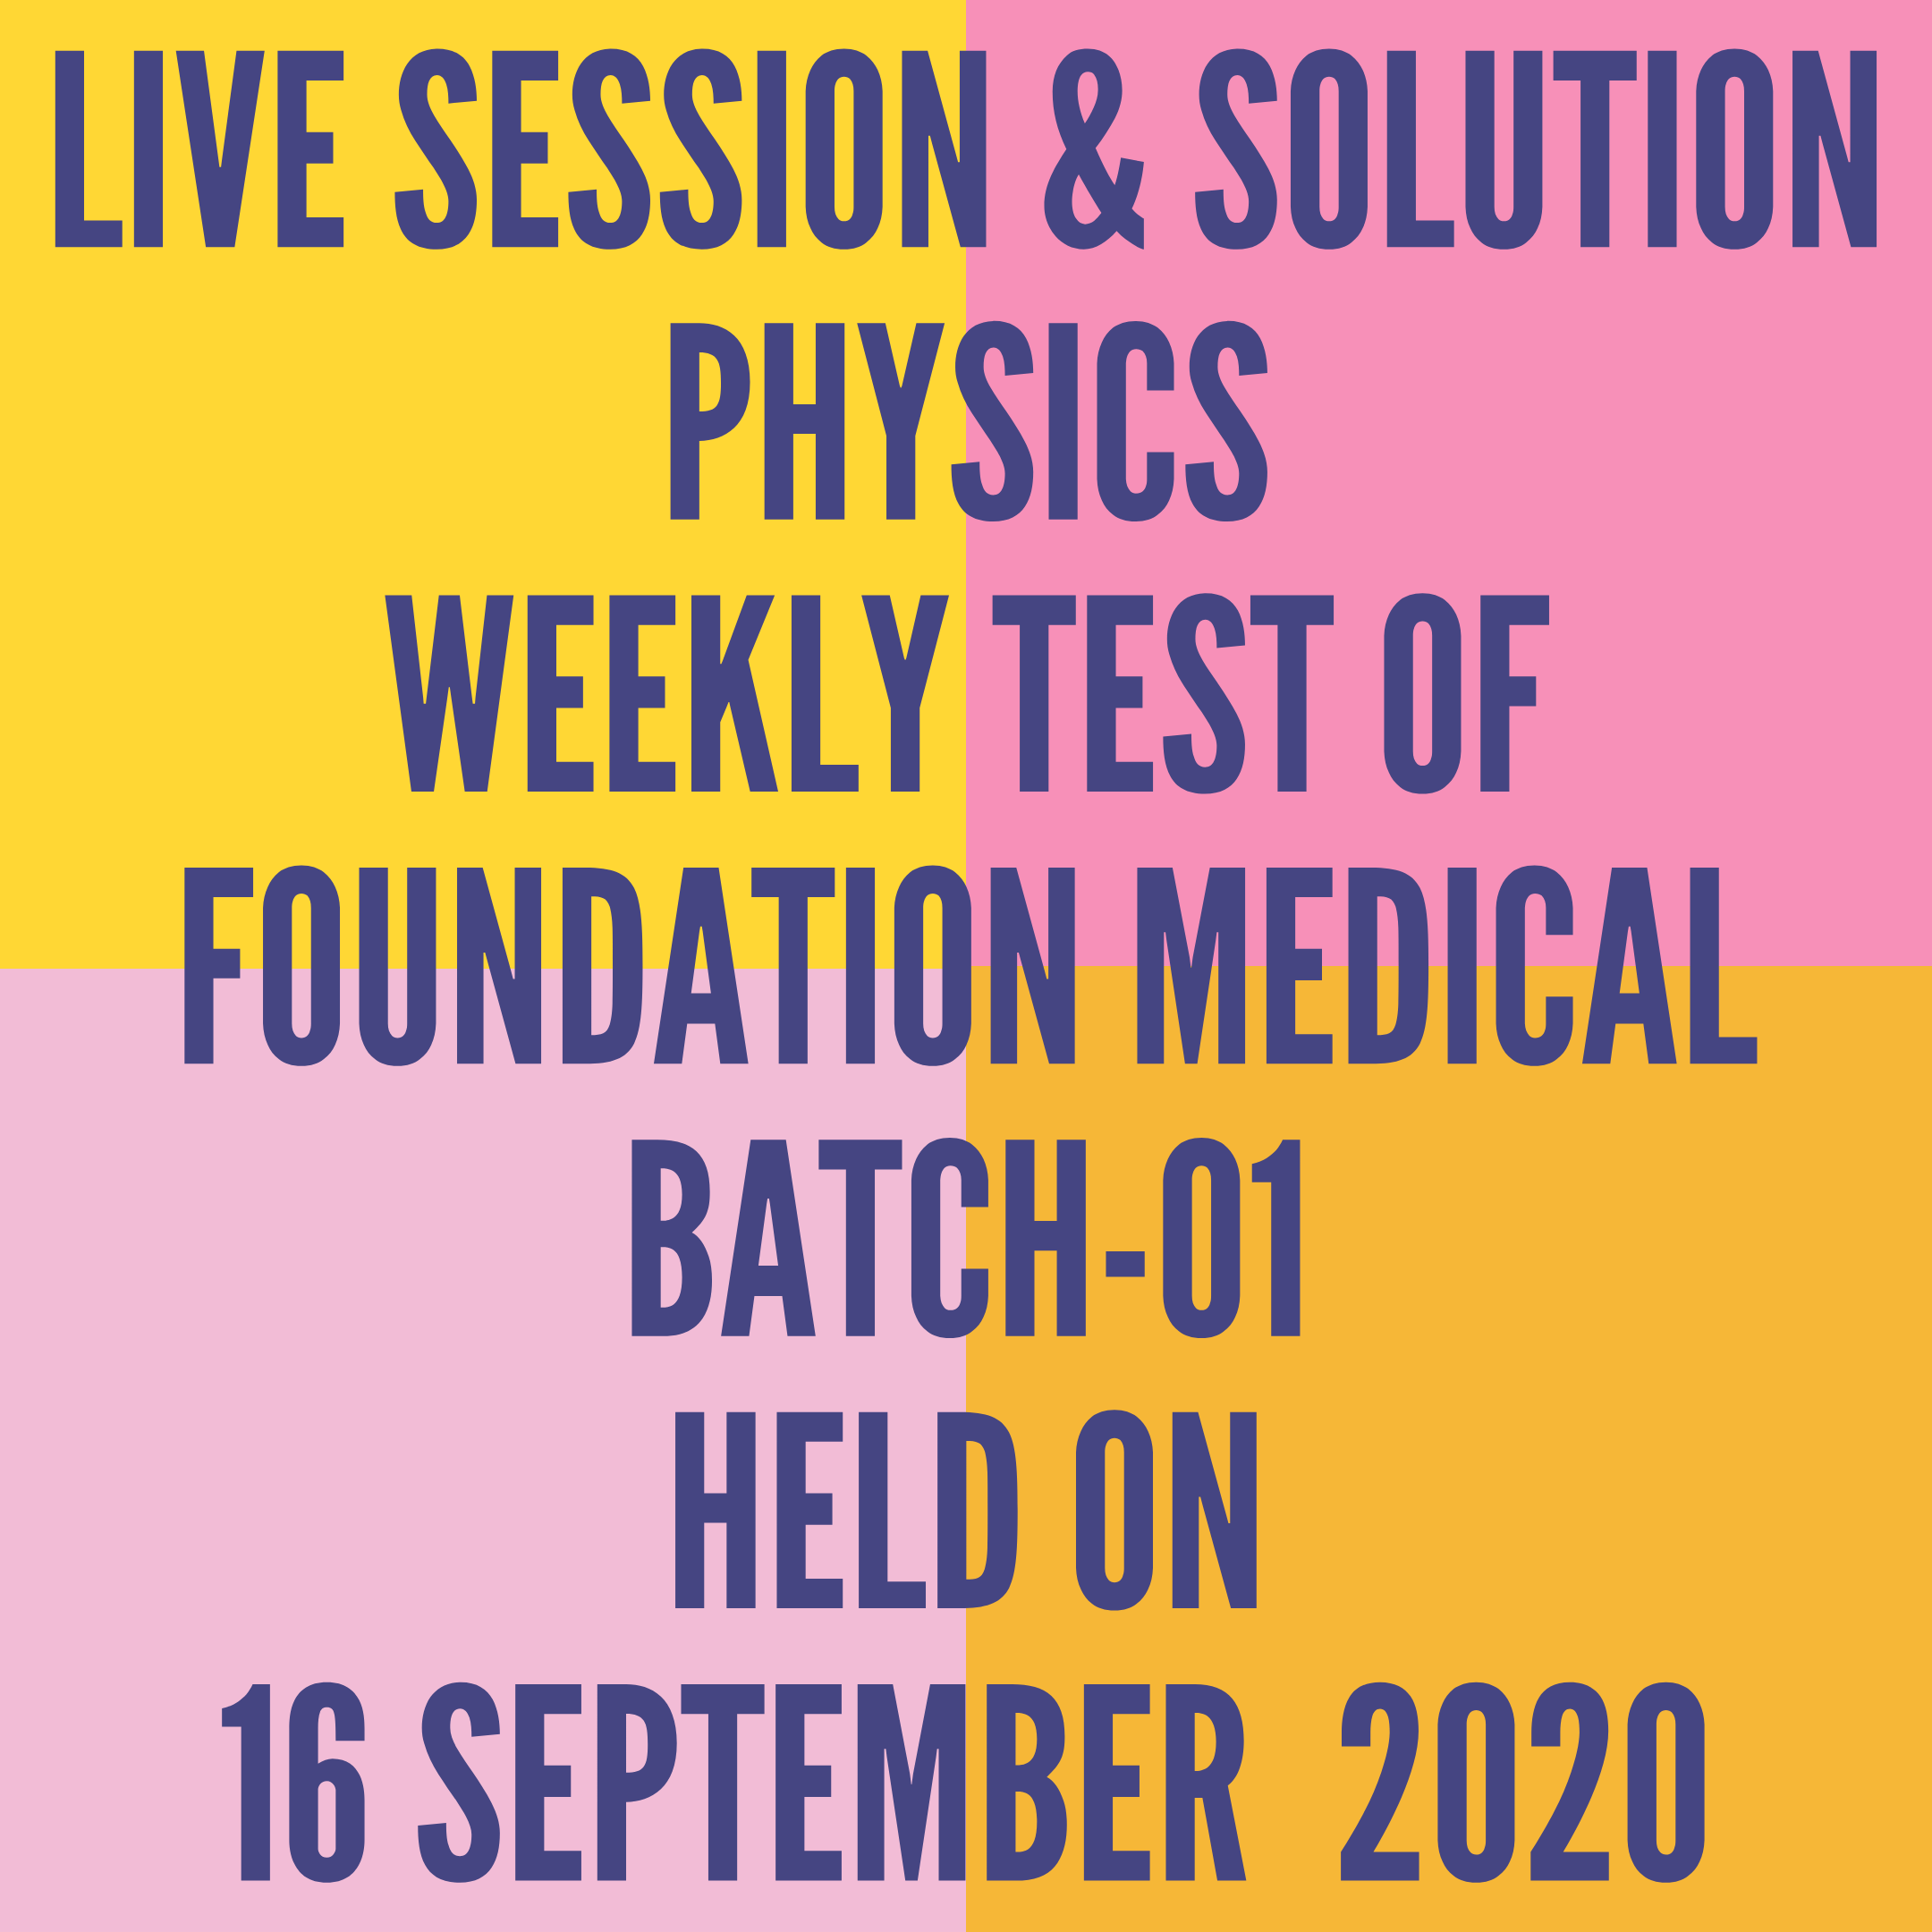 LIVE SESSION & SOLUTION PHYSICS WEEKLY TEST OF FOUNDATION MEDICAL BATCH-01 HELD ON 16 SEPTEMBER  2020